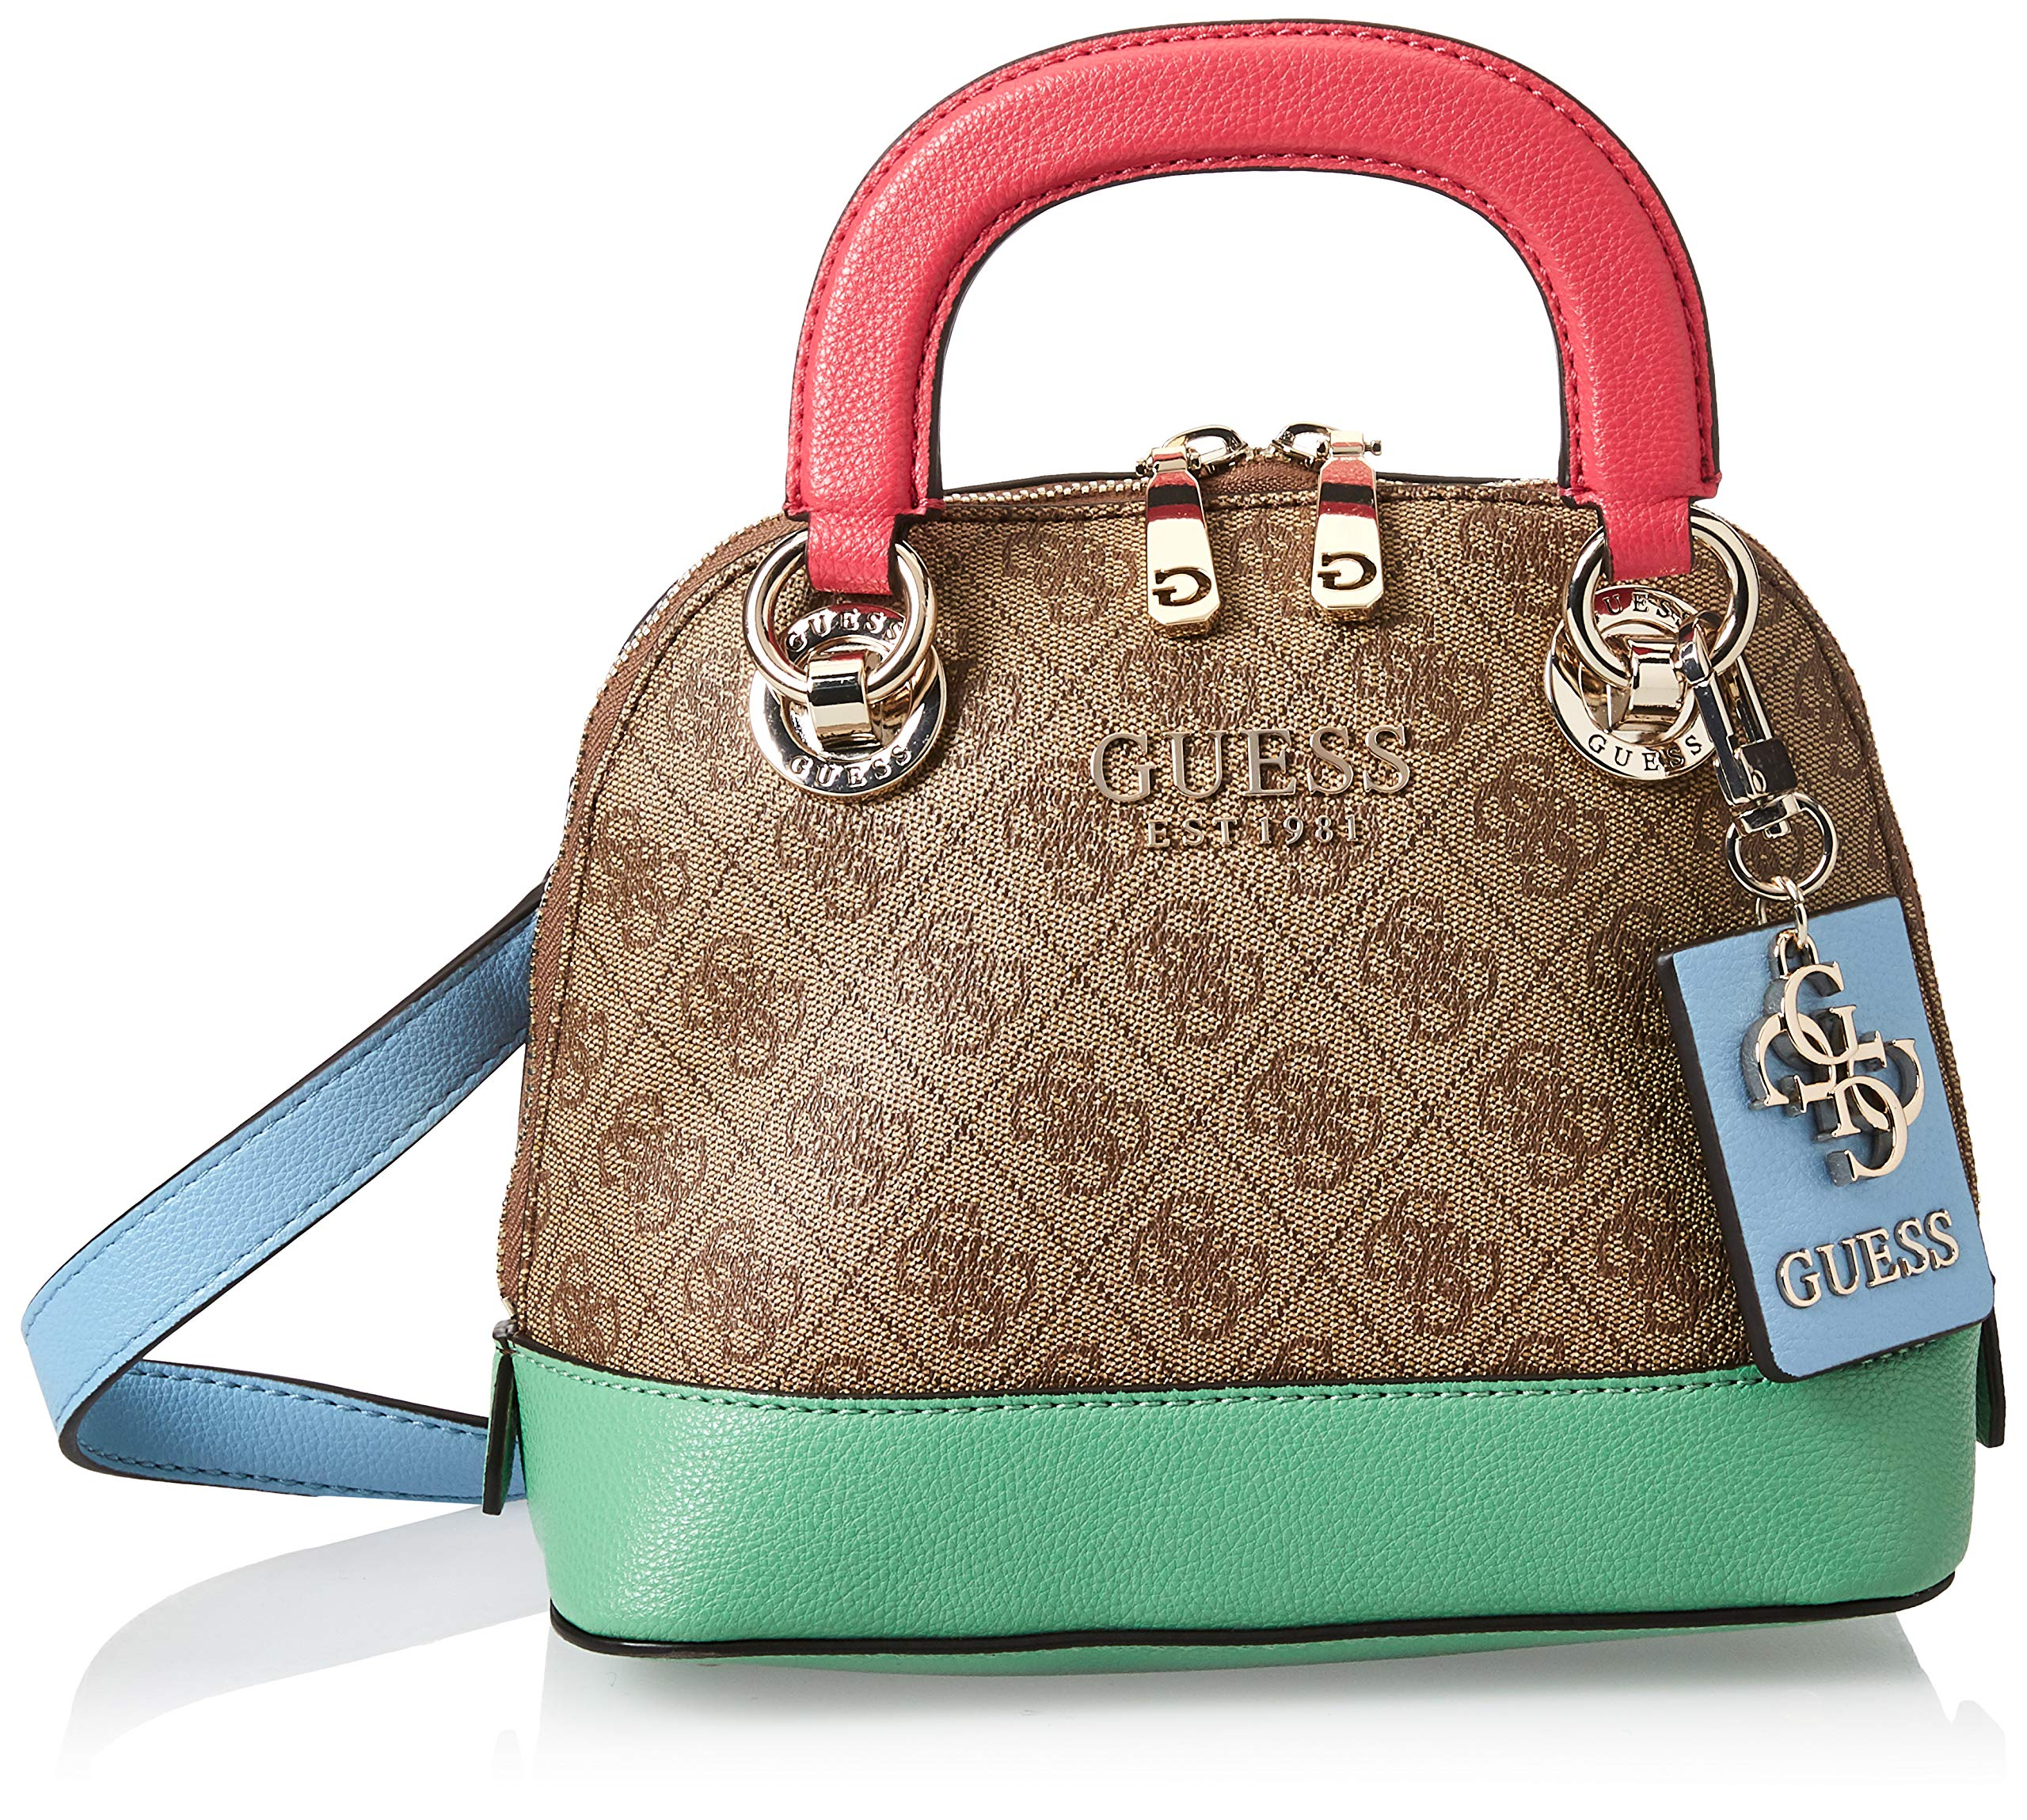 GUESS CATHLEEN SMALL DOME SATCHEL